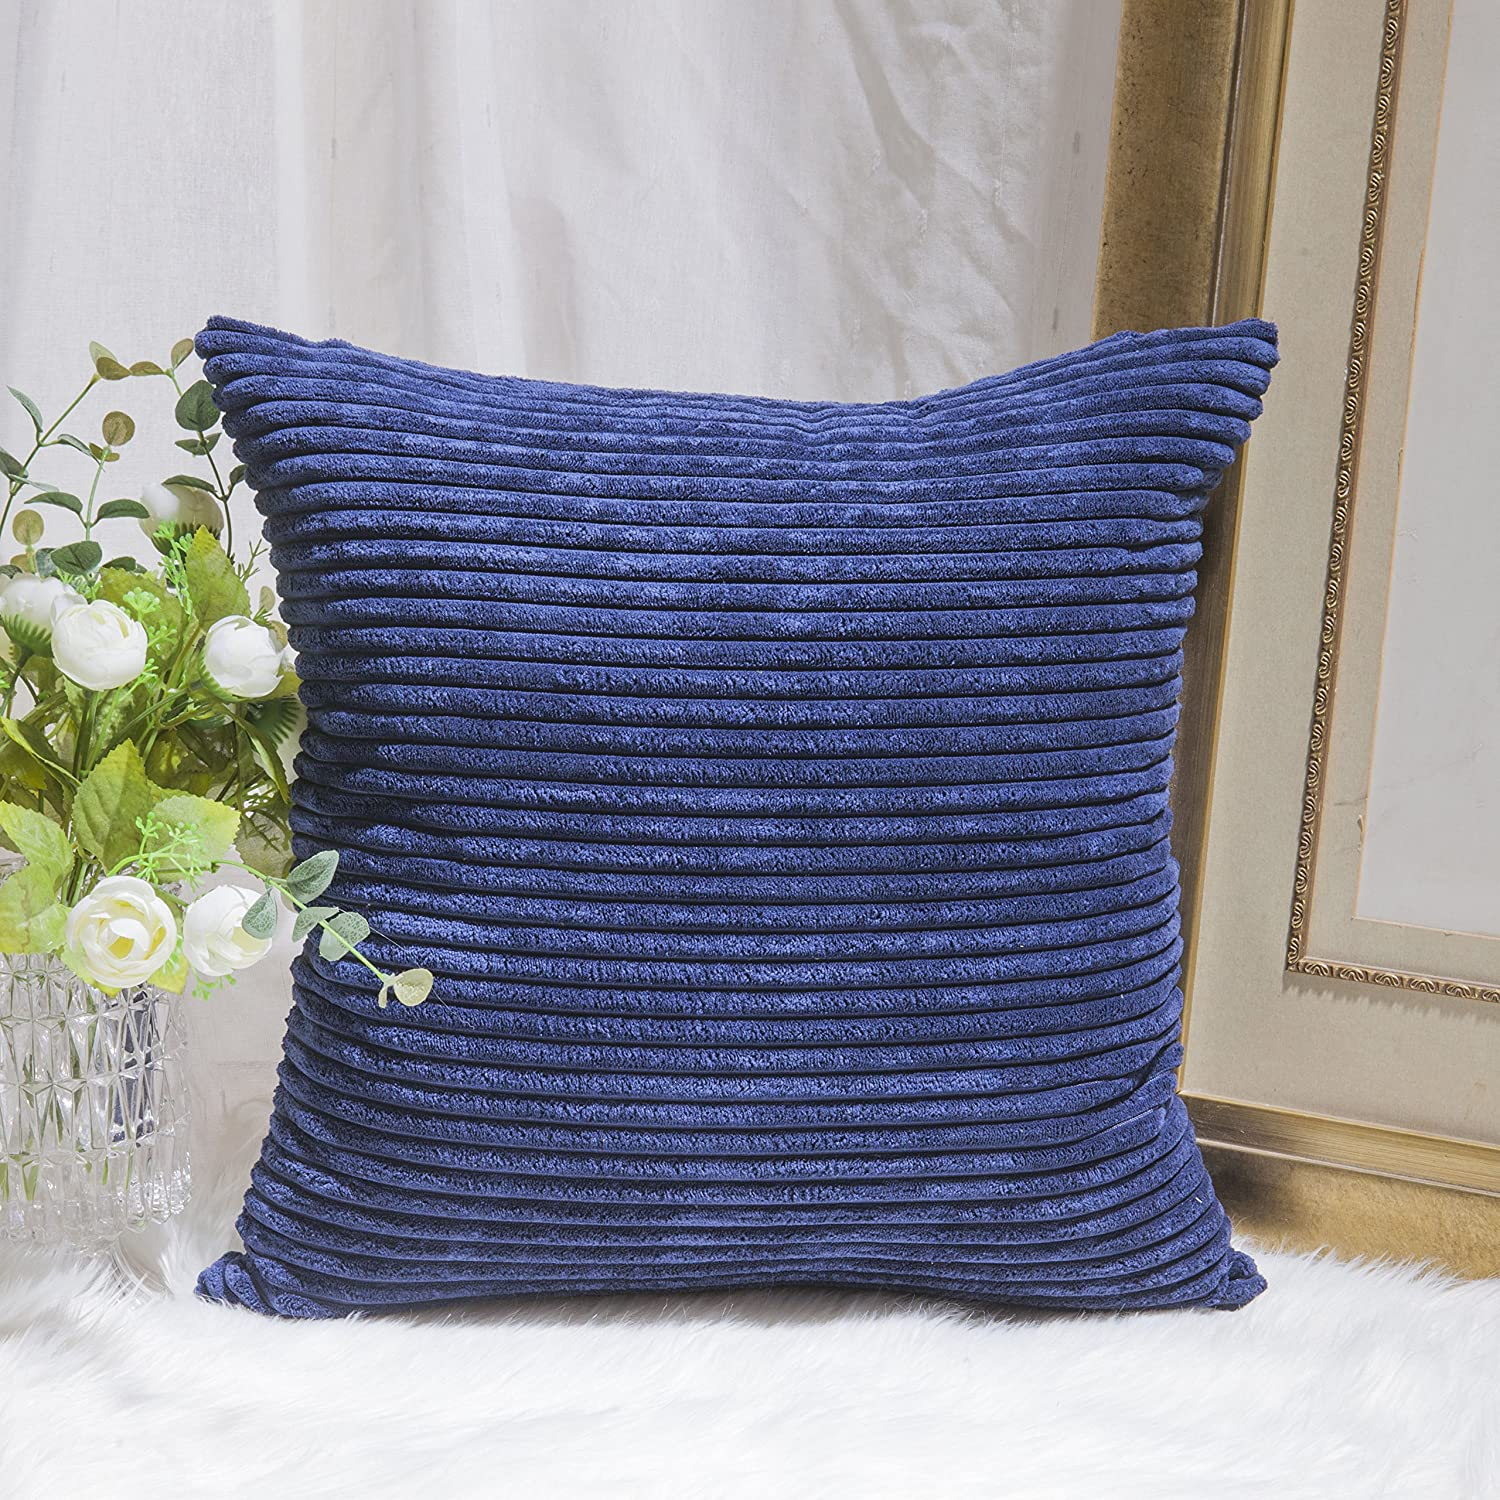 Home Brilliant Decor Supersoft Striped Textured Velvet Corduroy Decorative Throw Toss Pillowcase Cushion Cover for Chair, Navy Blue, (45x45 cm, 18inch)